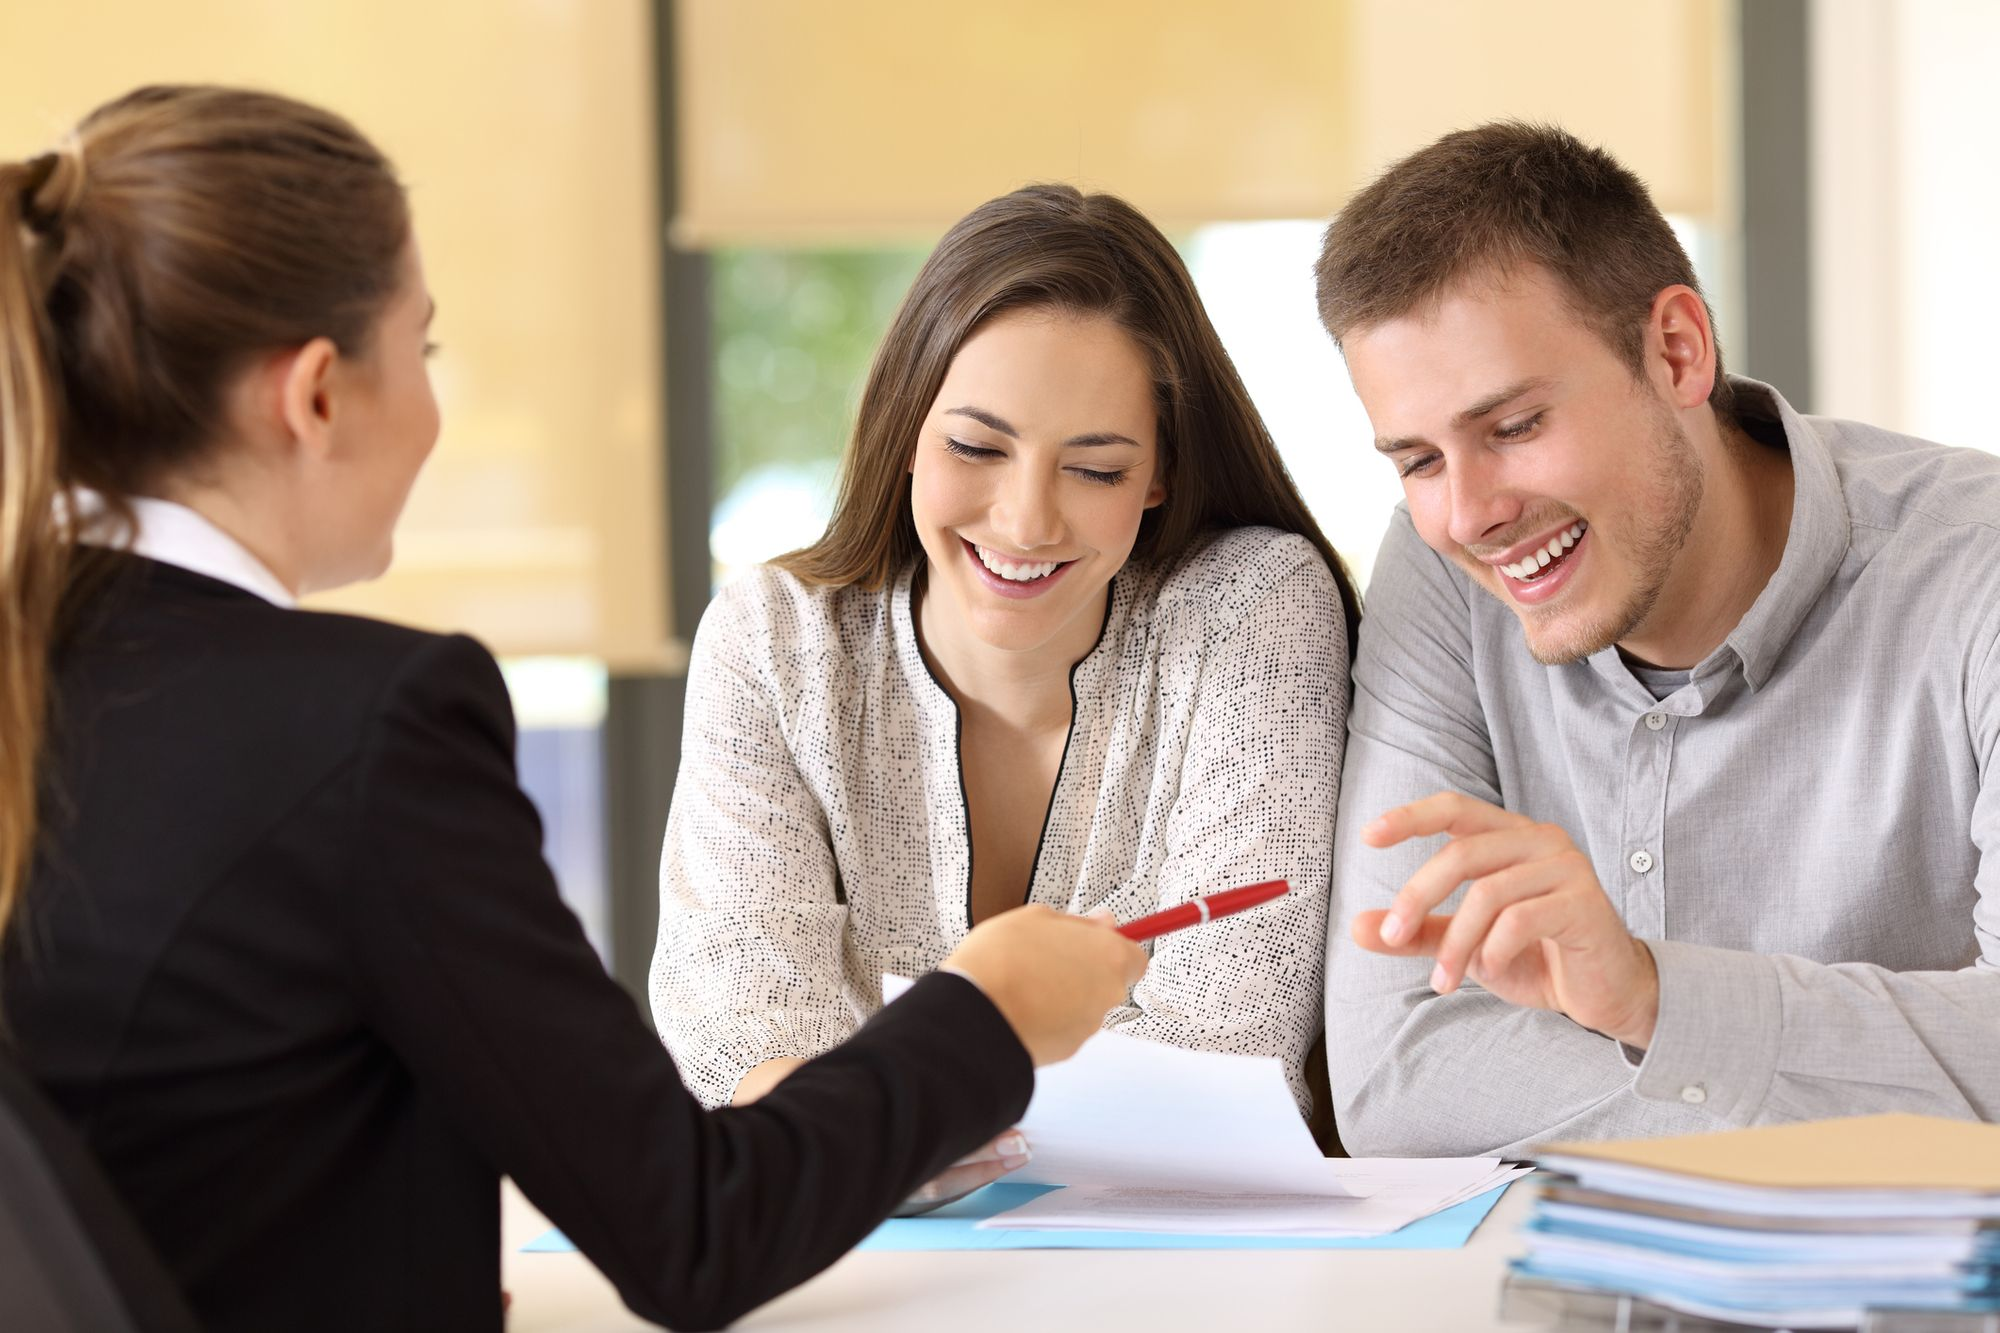 5 Things You Shouldn't Do After Applying for a Mortgage